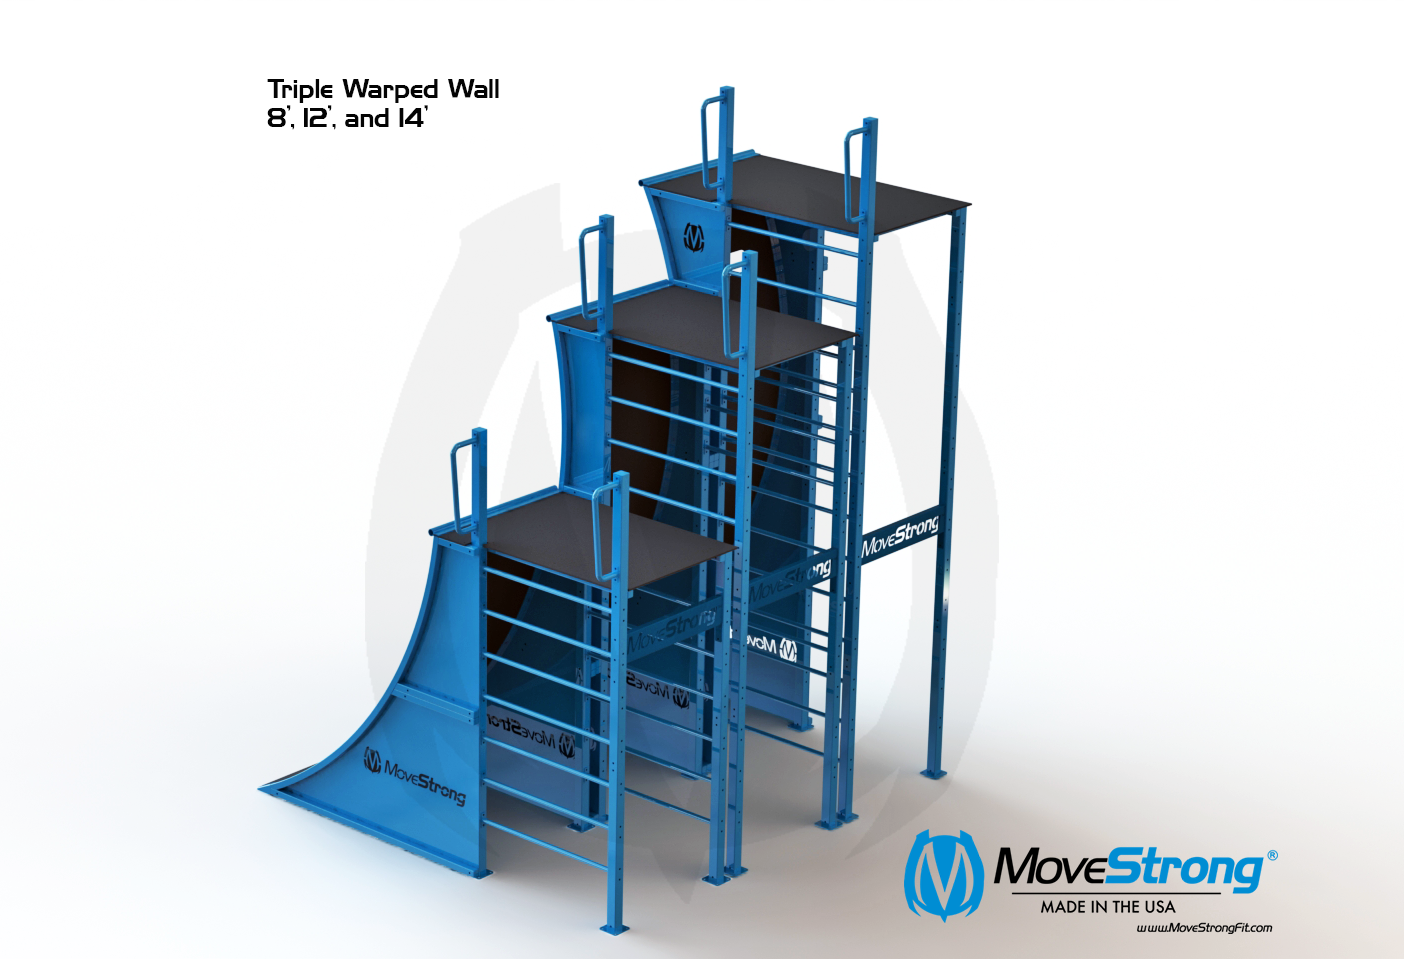 Triple Warped Wall MoveStrong